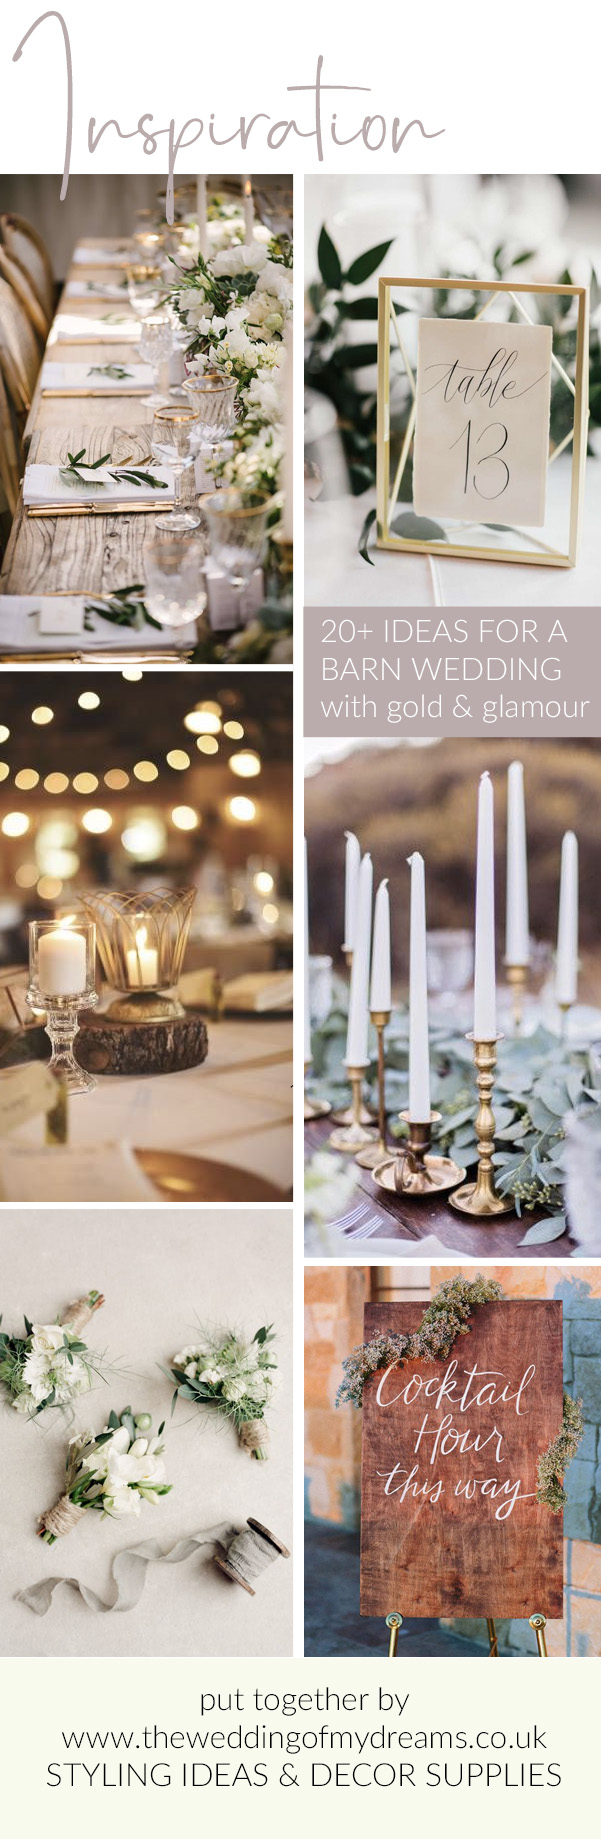 20 + barn wedding ideas with gold glamour The Wedding of my Dreams The Wedding of my Dreams WEDDING STYLING IDEAS AND DECOR SUPPLIES